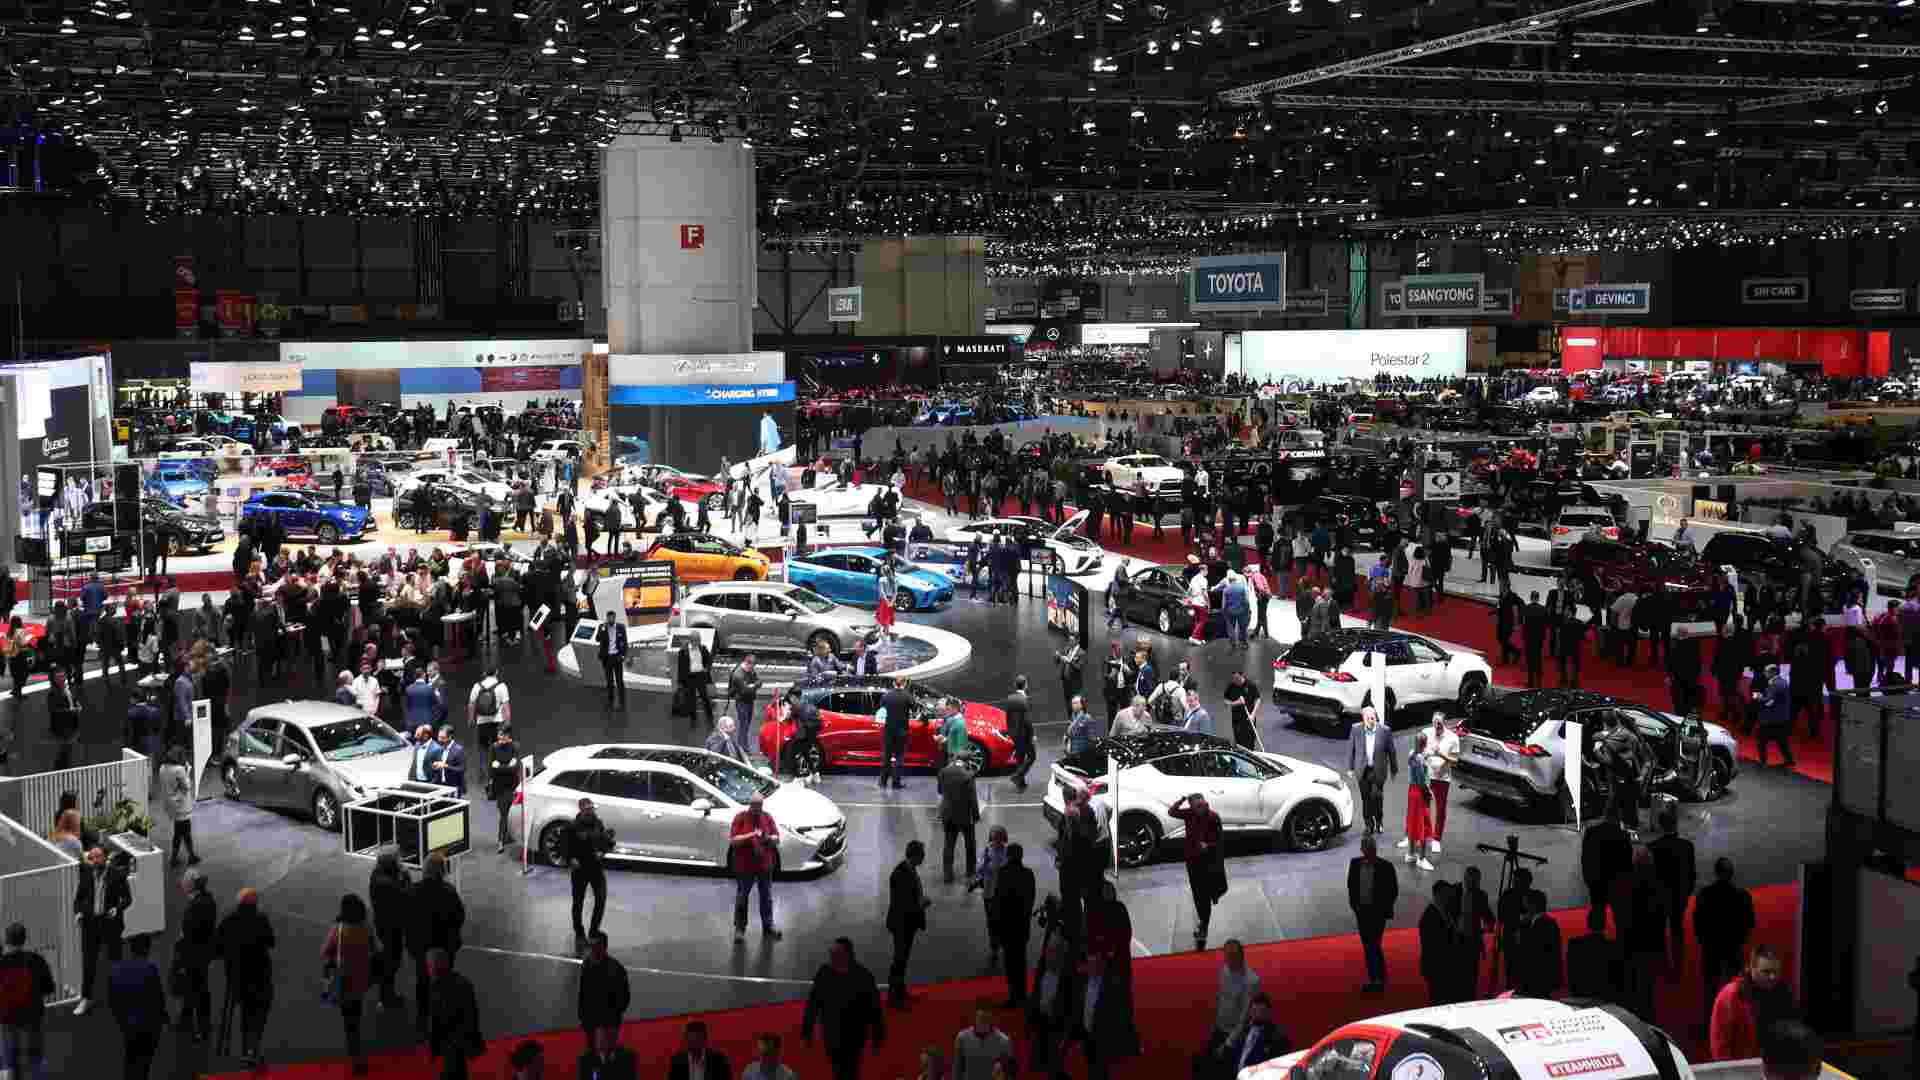 The most recent edition of the Geneva motor show was held in 2019. Image: Newspress